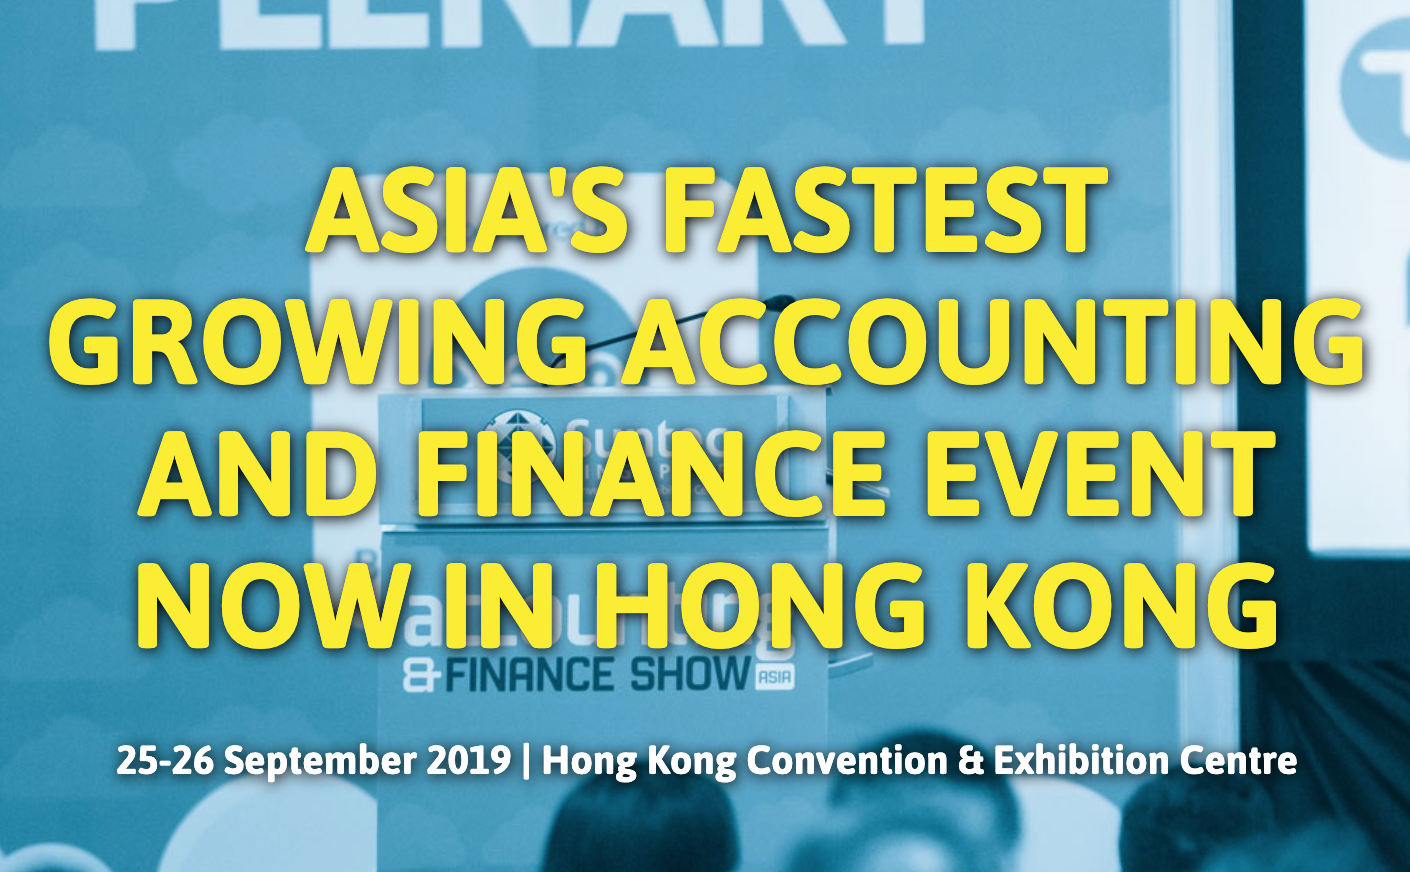 Accounting & Finance Show - Fintech and Blockchain Event Asia Pacific